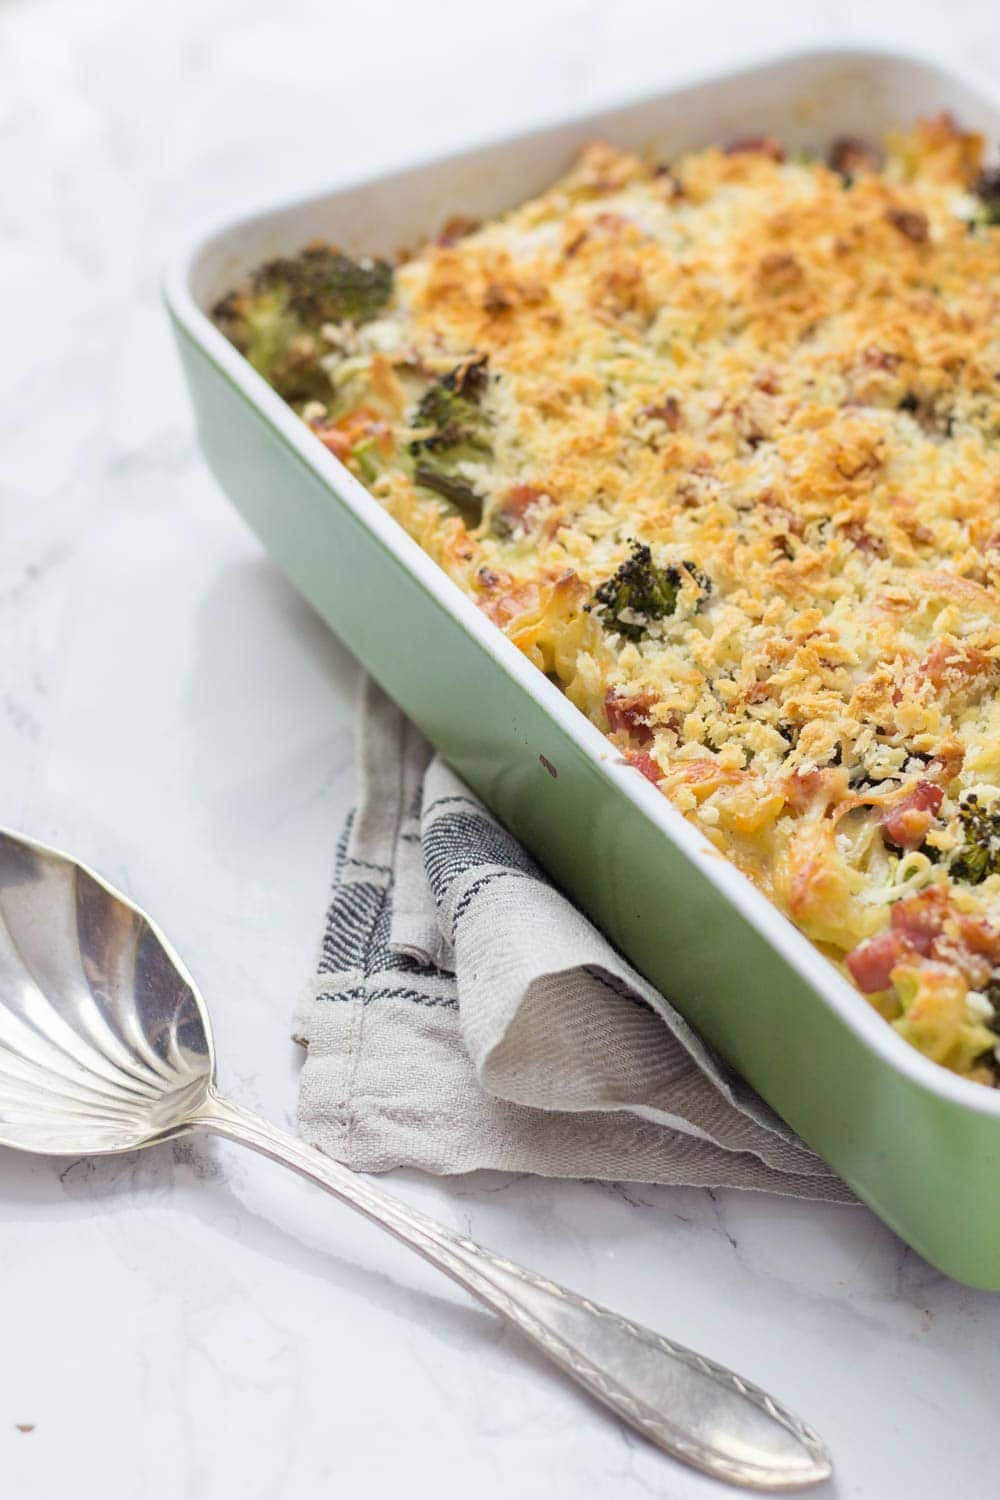 This asparagus & pancetta baked pasta is a perfect family dinner which also makes great leftovers eaten cold the next day.